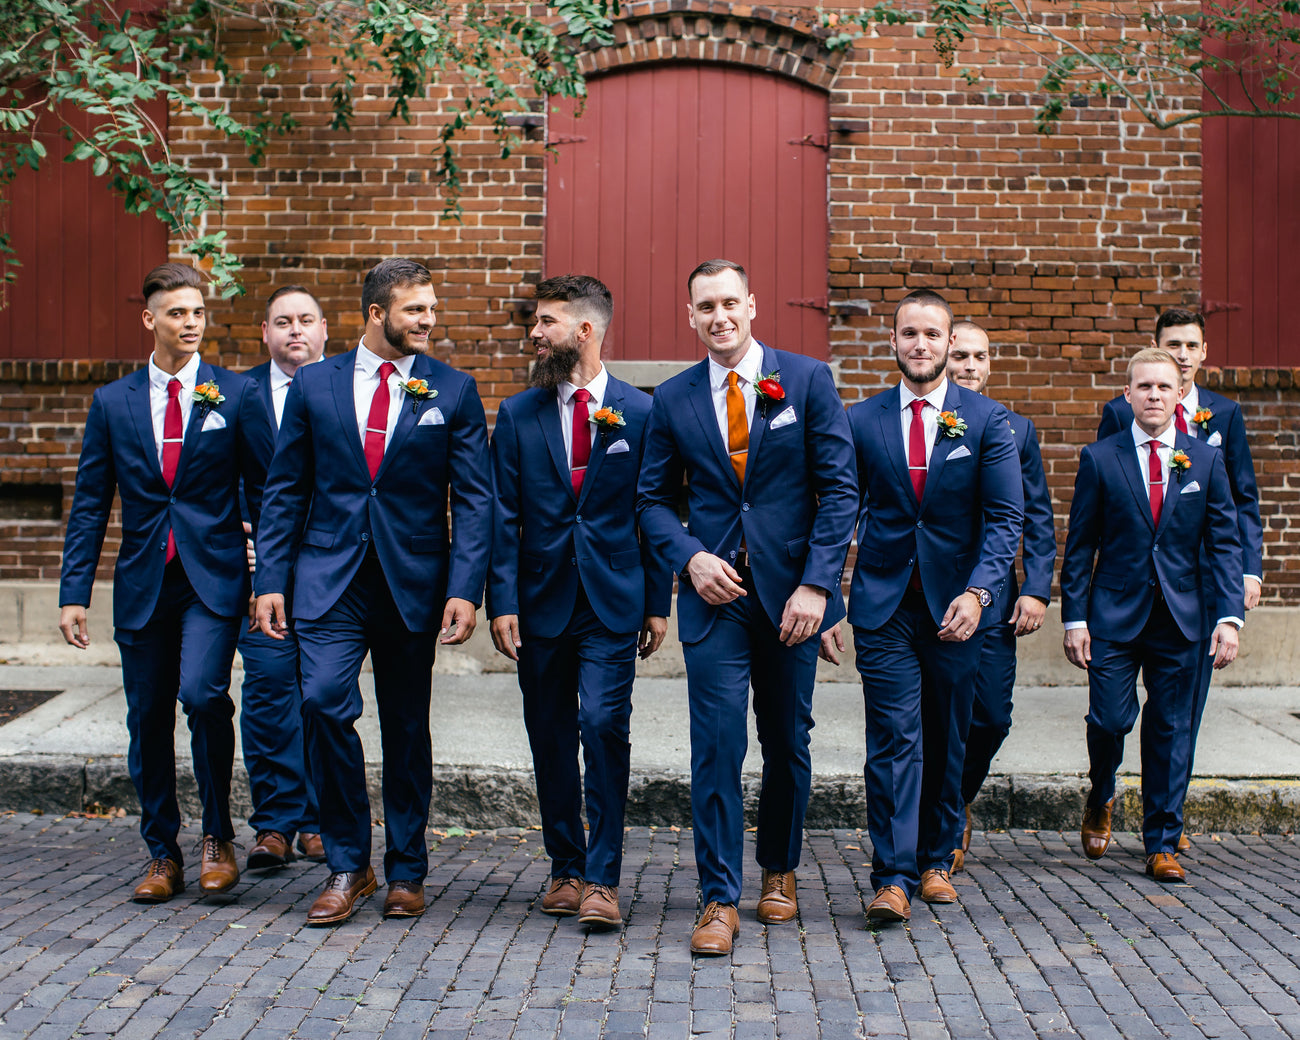 ce70231f18e3 How to Fold a Pocket Square for a Wedding - The Groomsman Suit